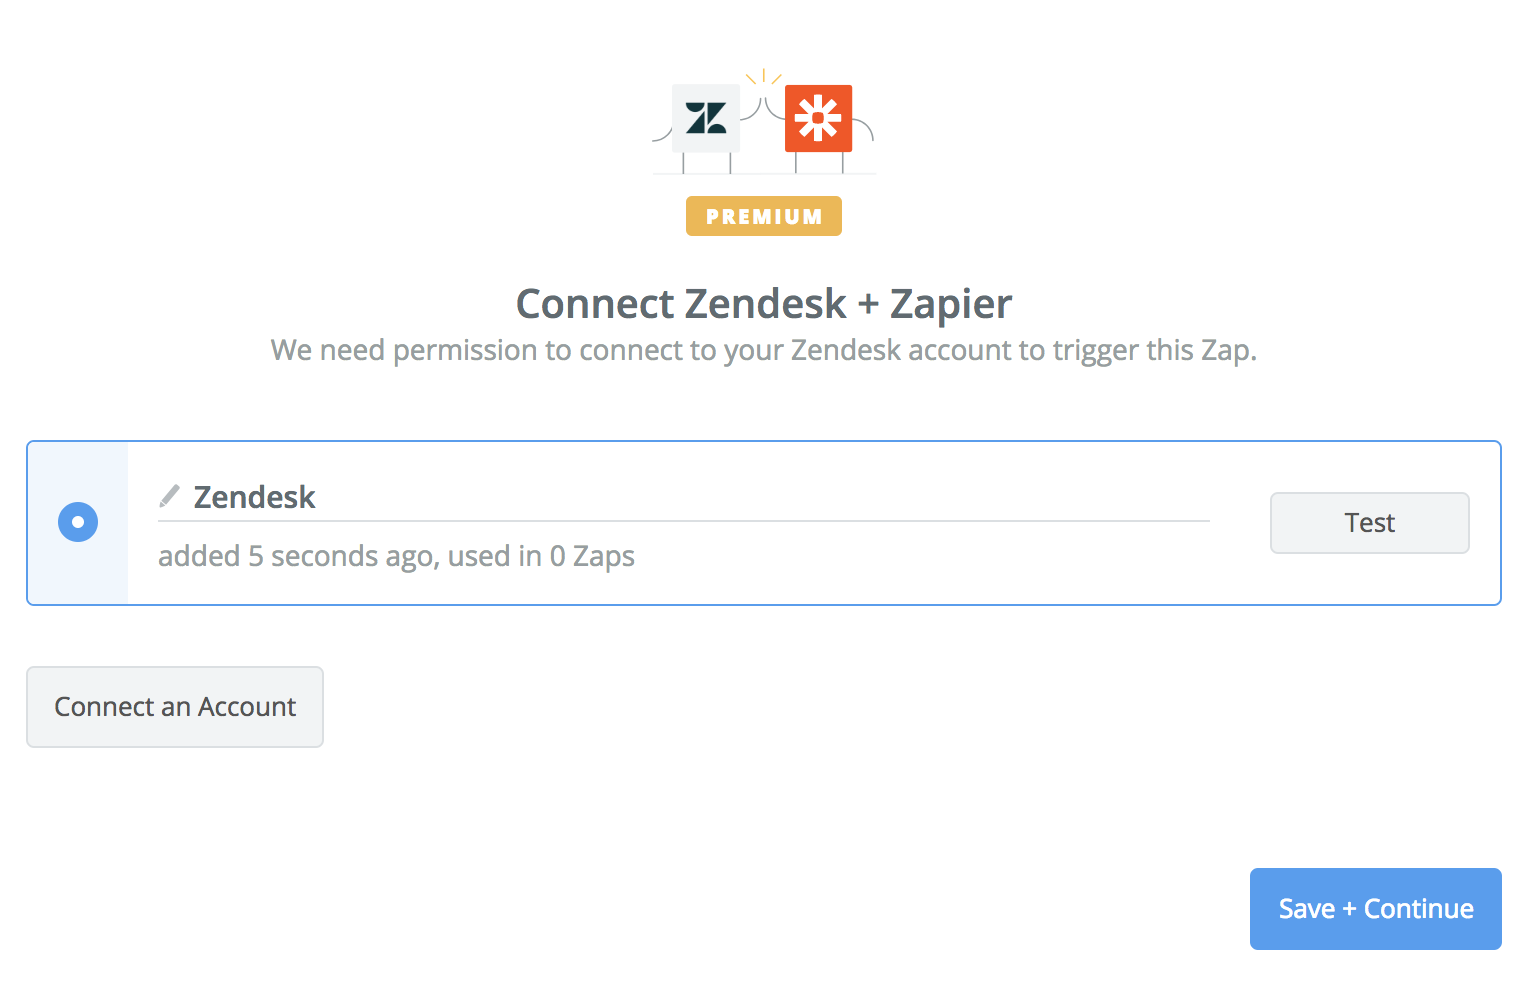 Zendesk connection successful